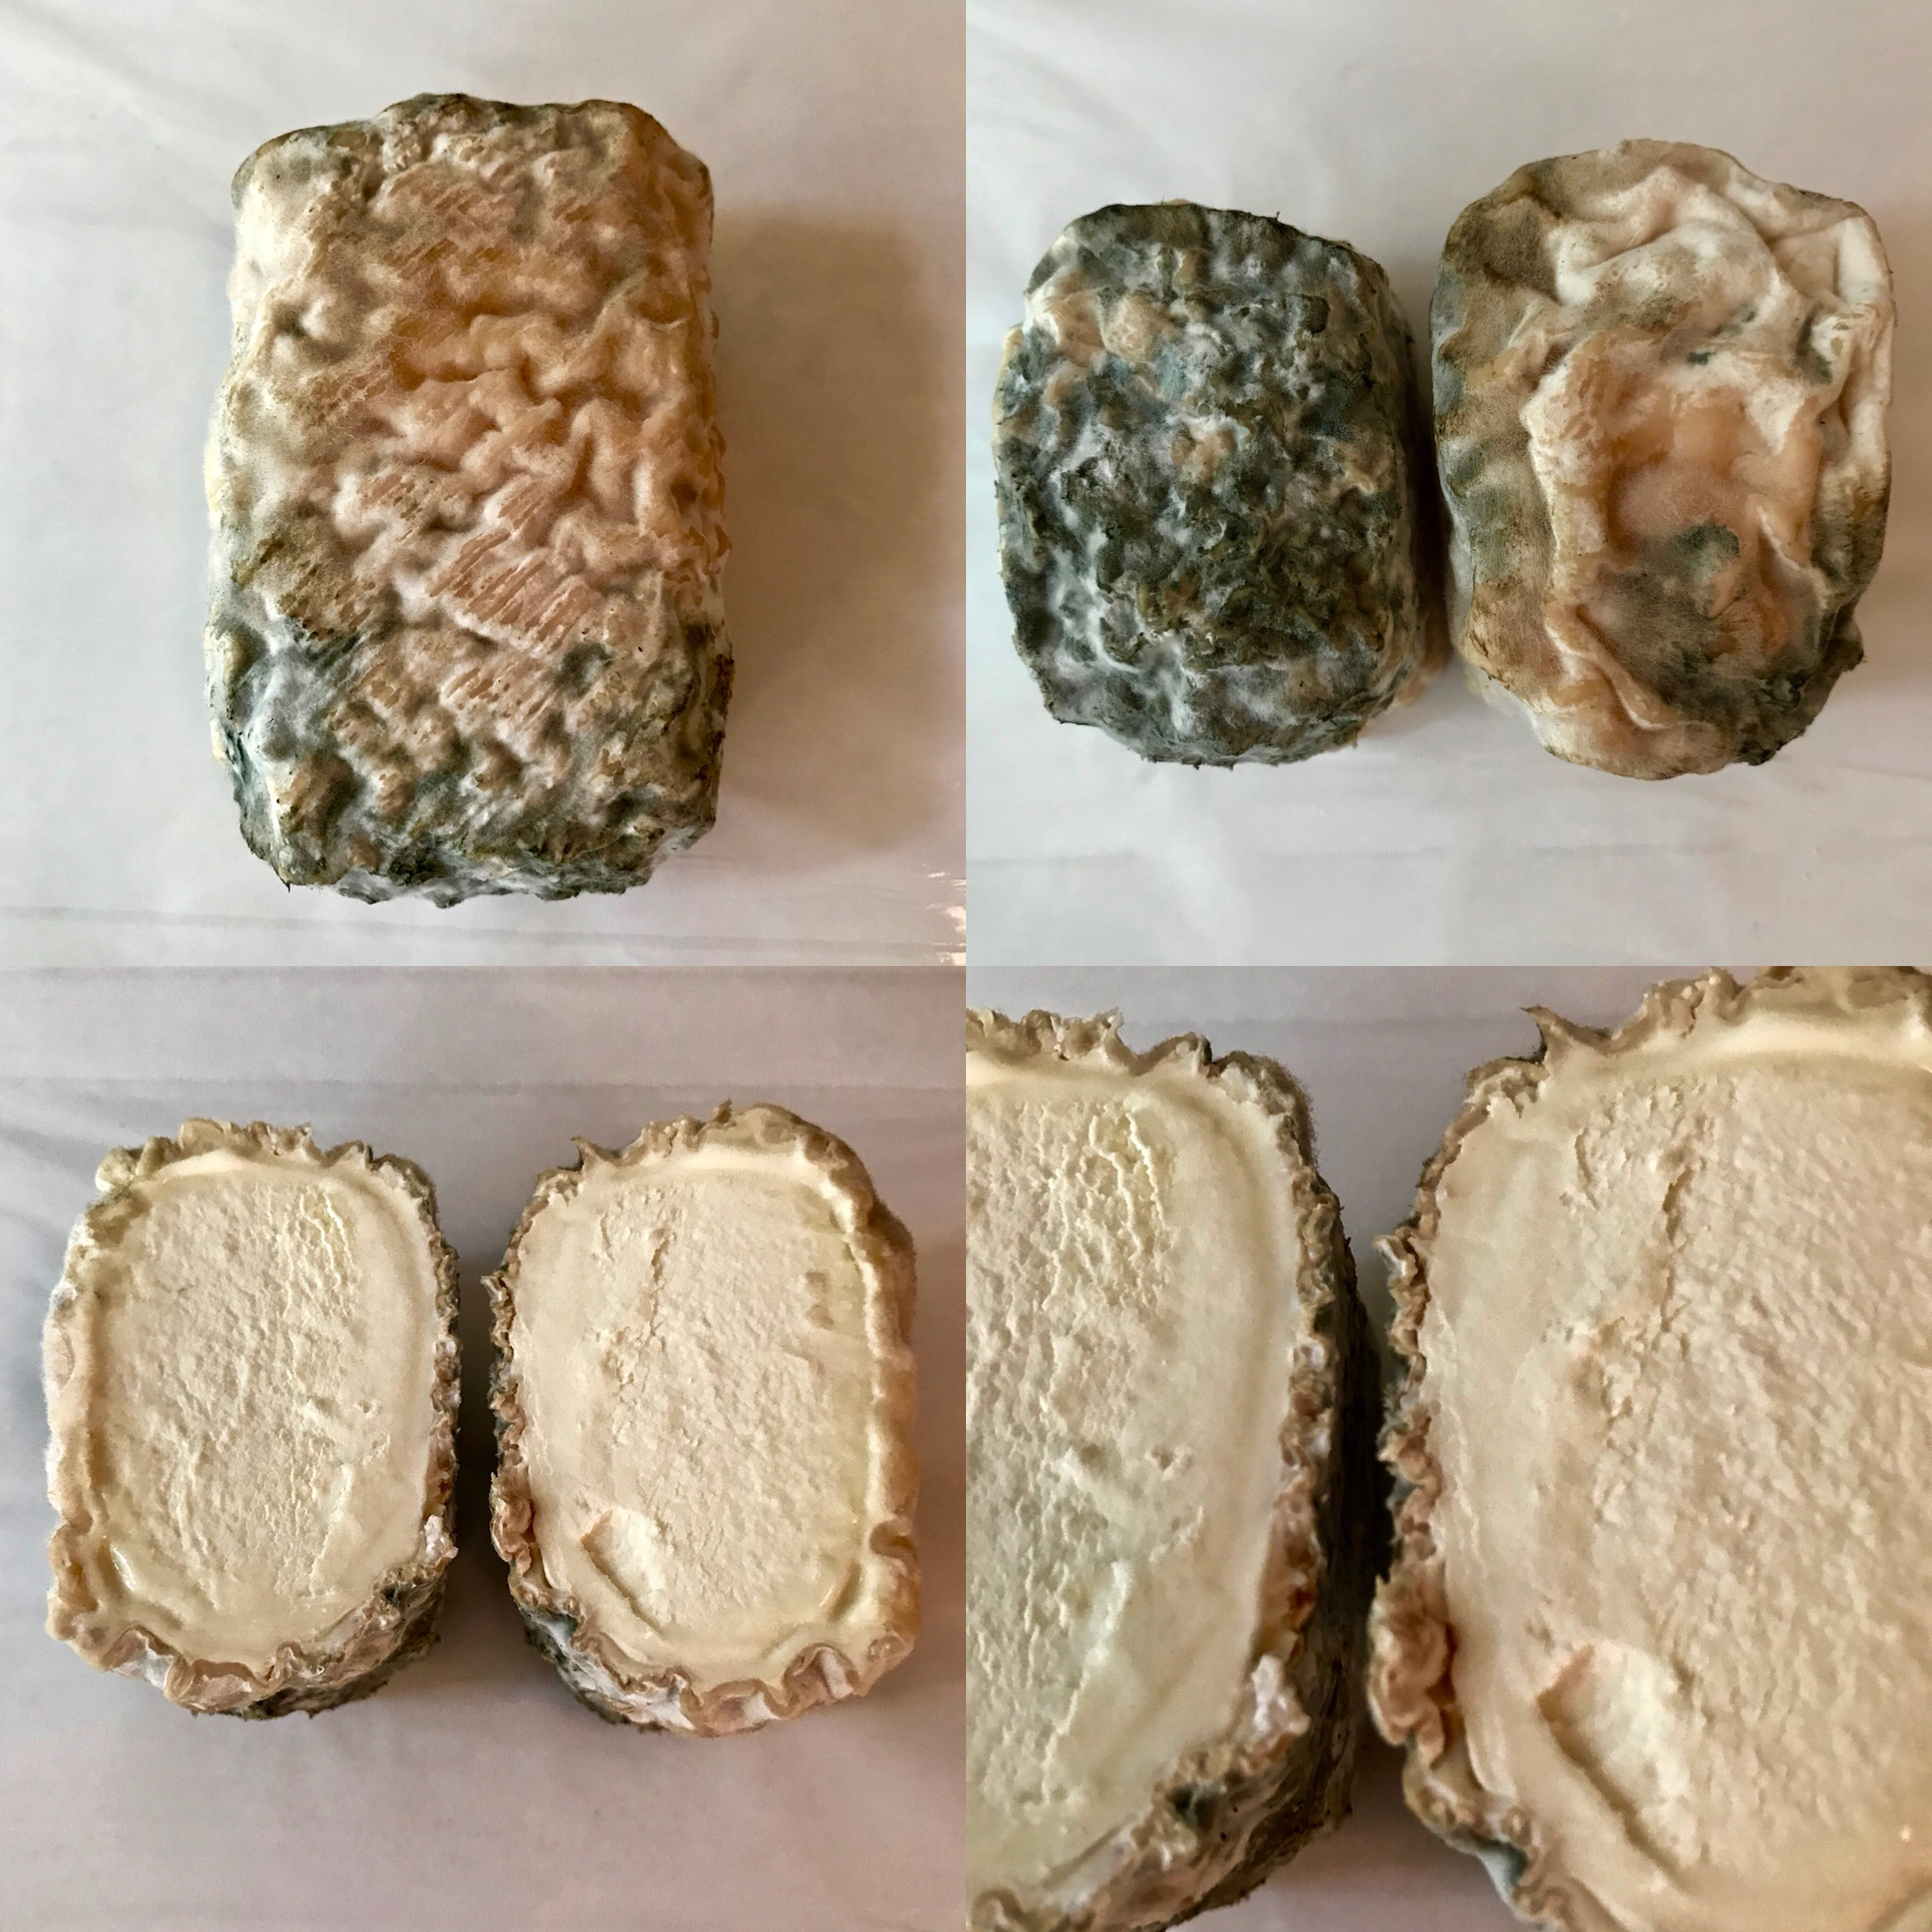 Dirty Harriet - Dirty Harriet is all gooey, all gorgeous and all goat! A raw milk lactic cheese, she ripens over a 4 to 8 week period. You can see ripening progress in the 4 week cheese pictured to the right. No prissy white rind for this gal, we let her rind go wild to show off a full expression of the microbes in our milk and a few added blue molds. Feeling lucky today? If so, take her home and make my day!